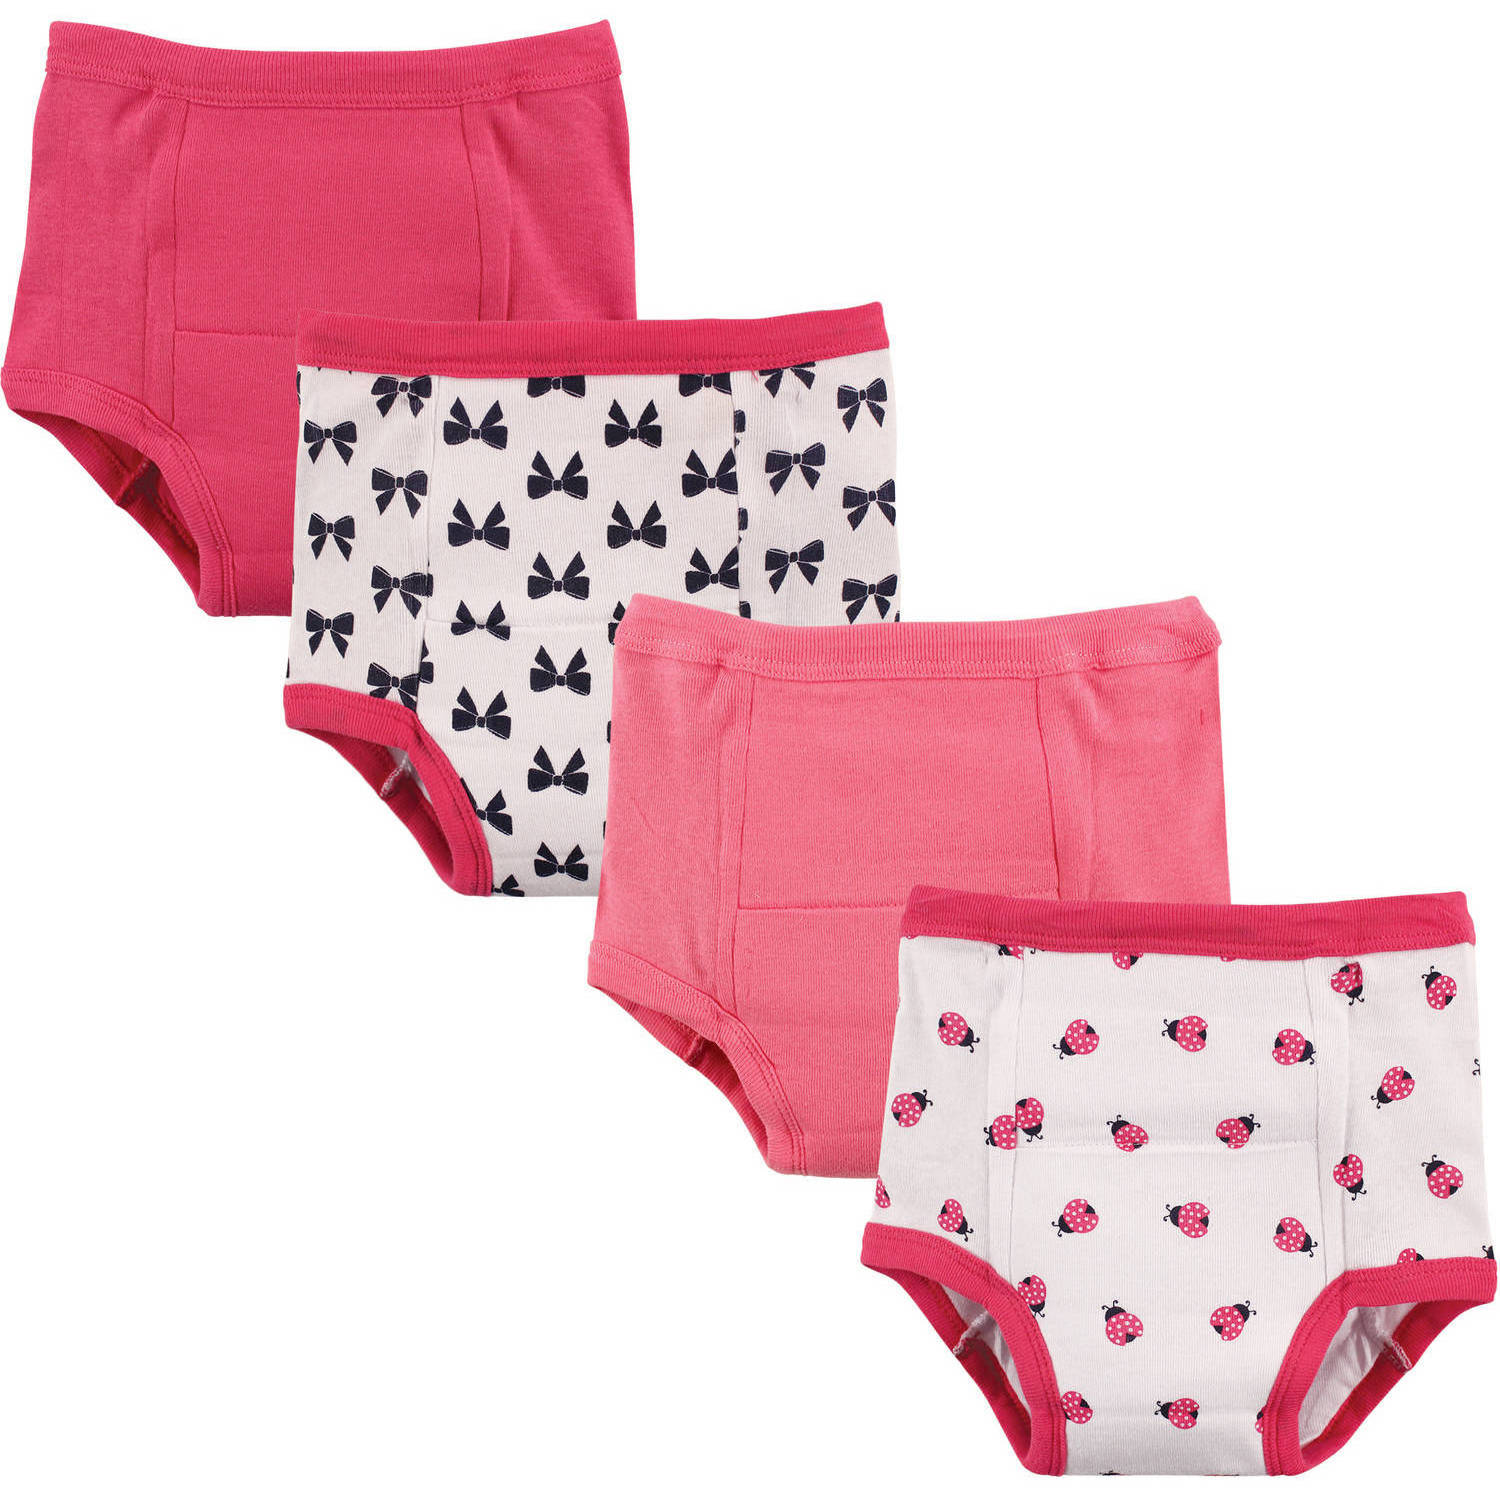 Luvable Friends Baby Boy and Girl Training Pants, 4 Pack